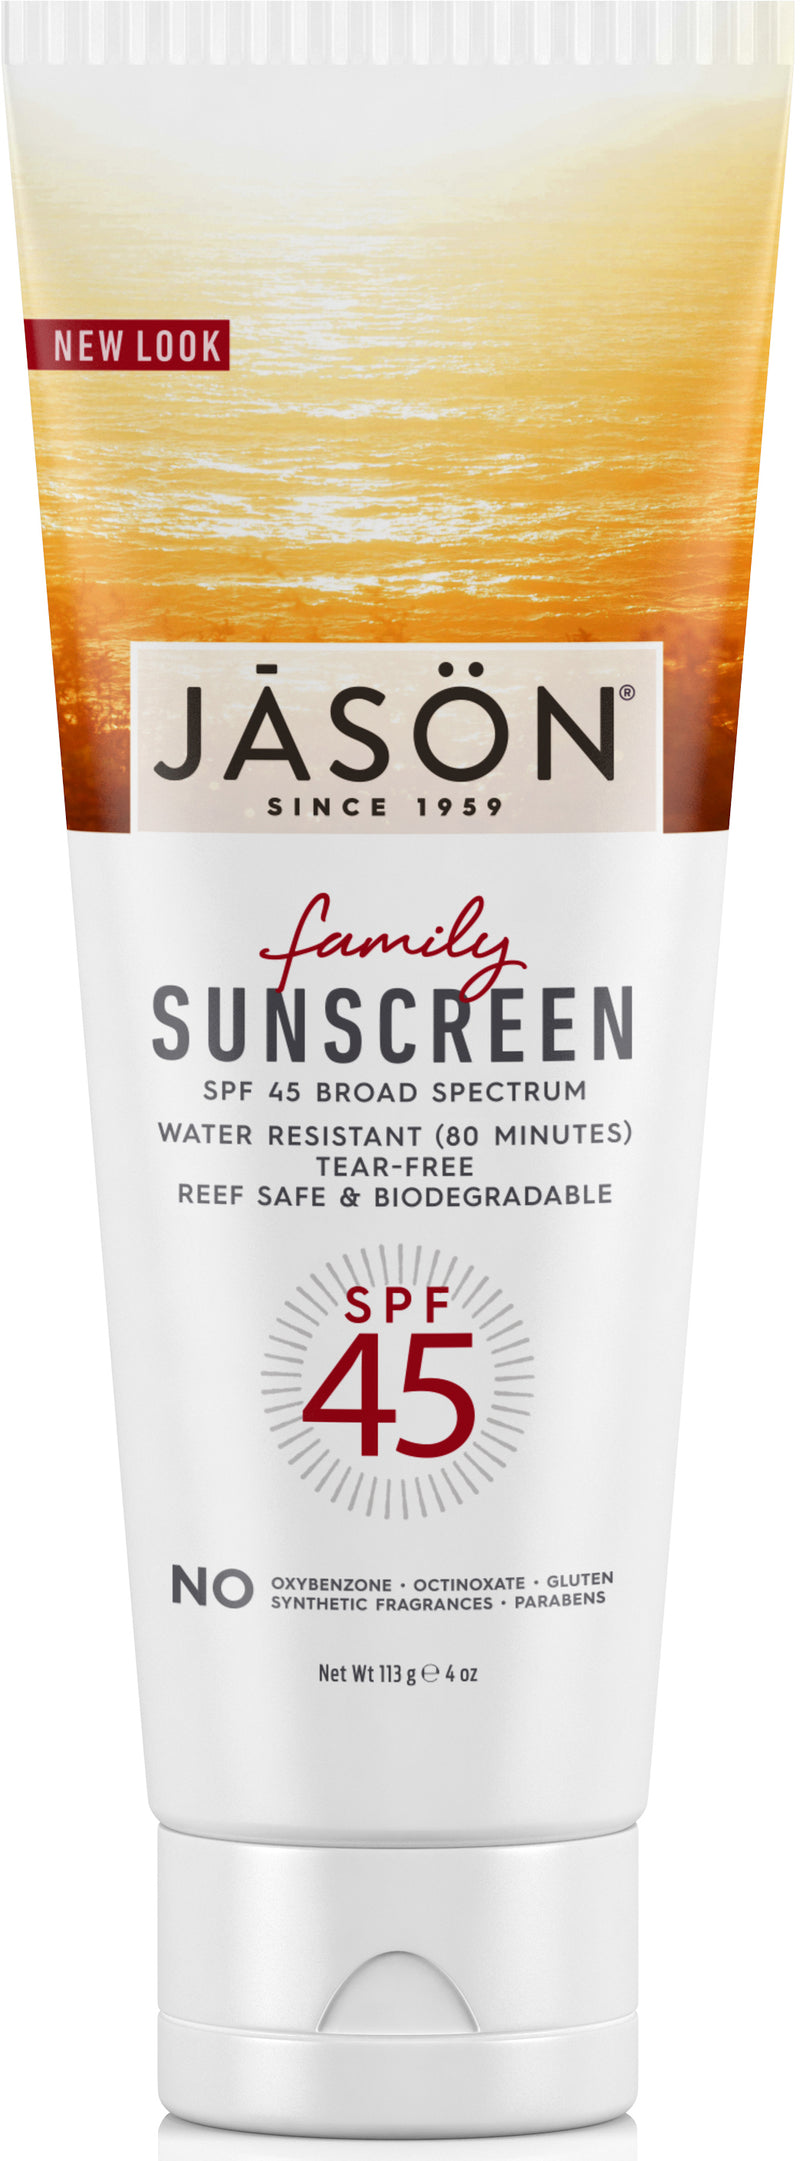 Family Sunscreen SPF 45